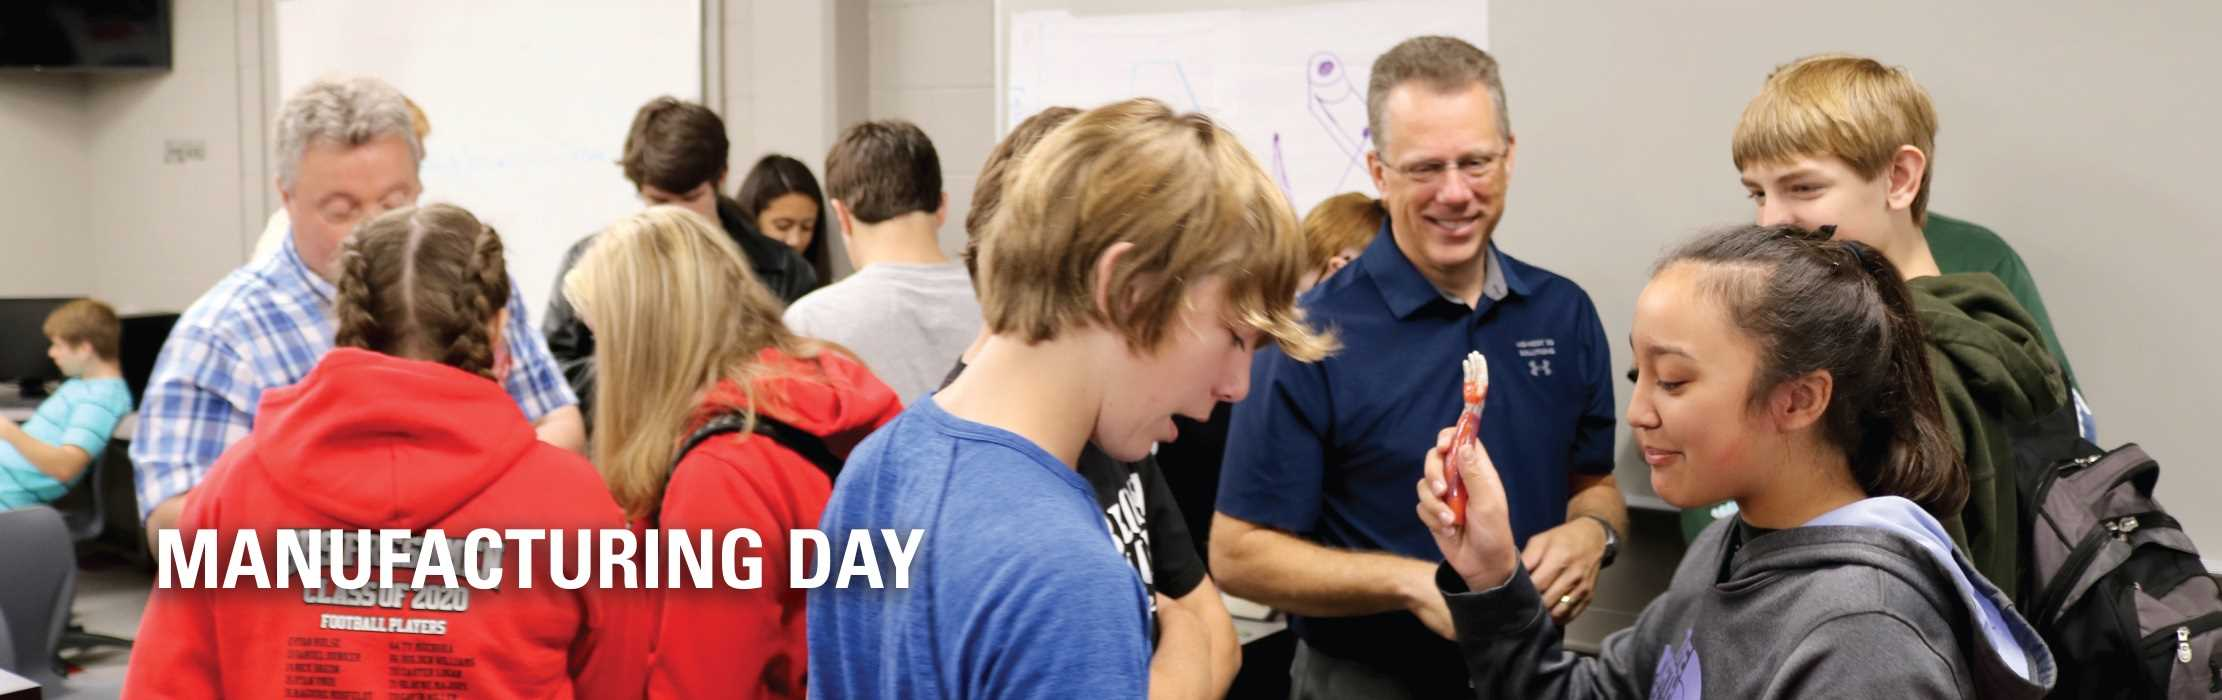 Iowa high school students interacting with faculty and industry on National Manufacturing Day.